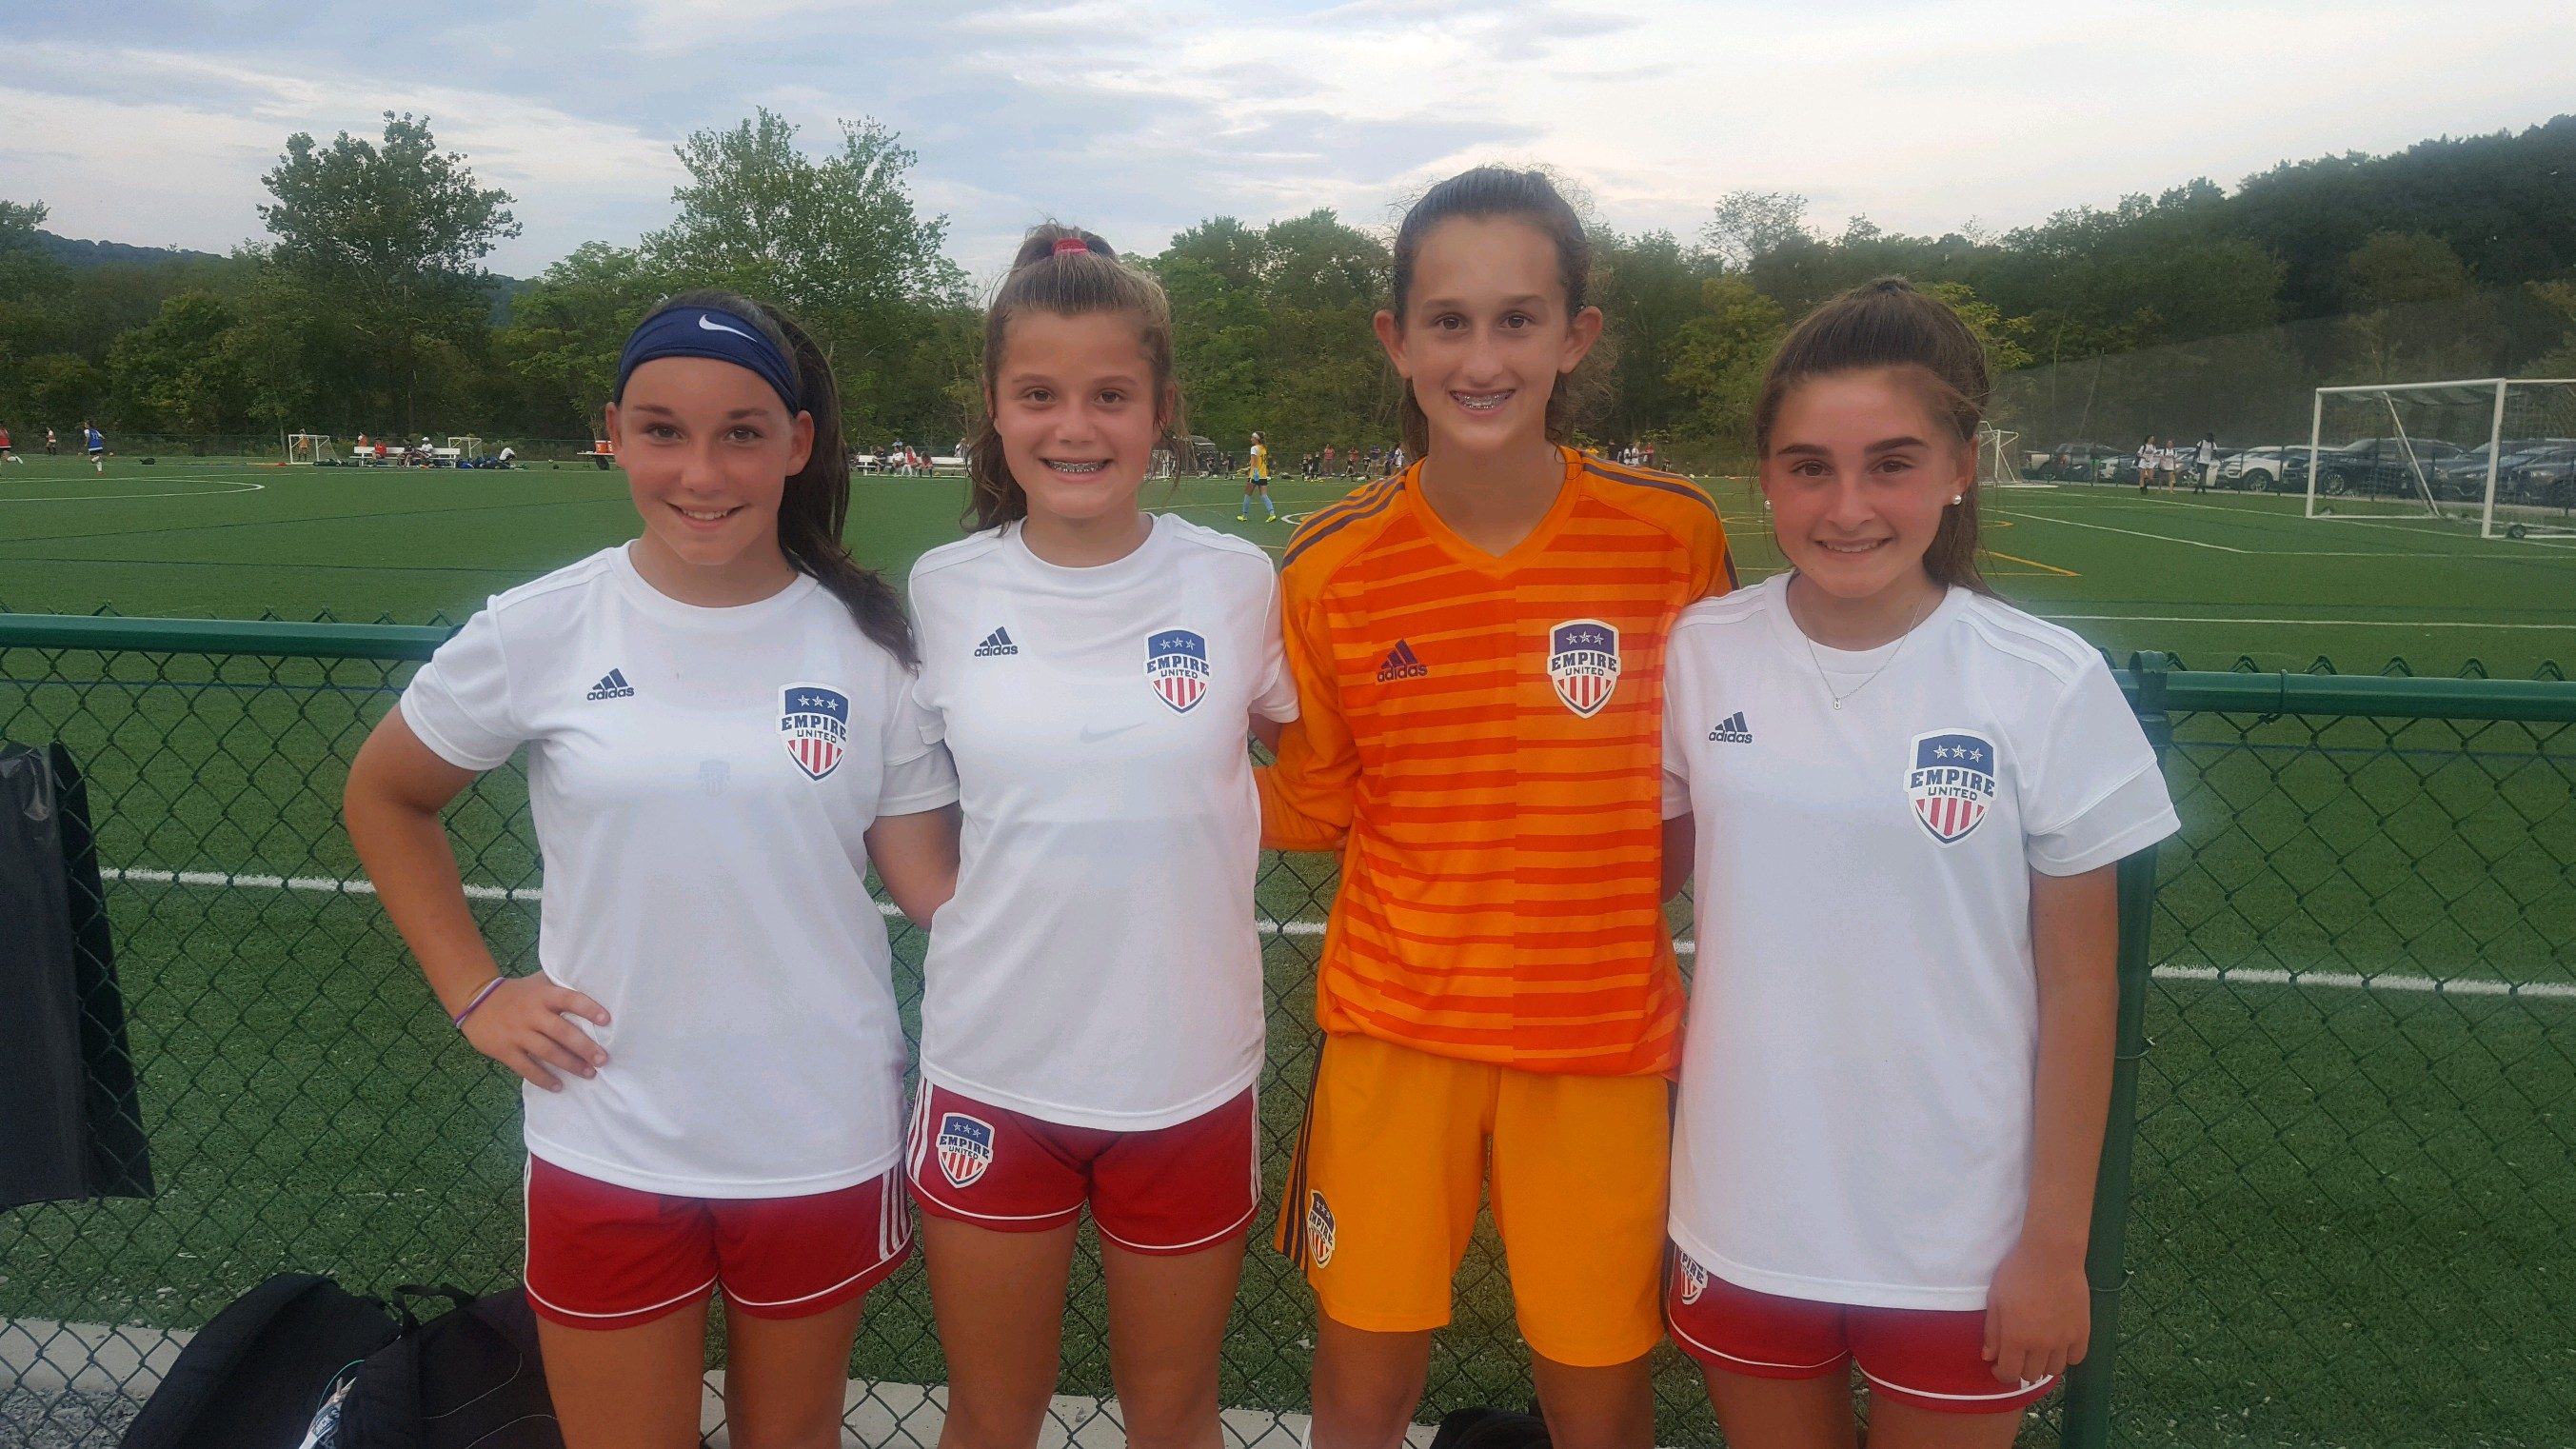 Four Empire United Girls Selected for US Soccer Youth National Team ID Center